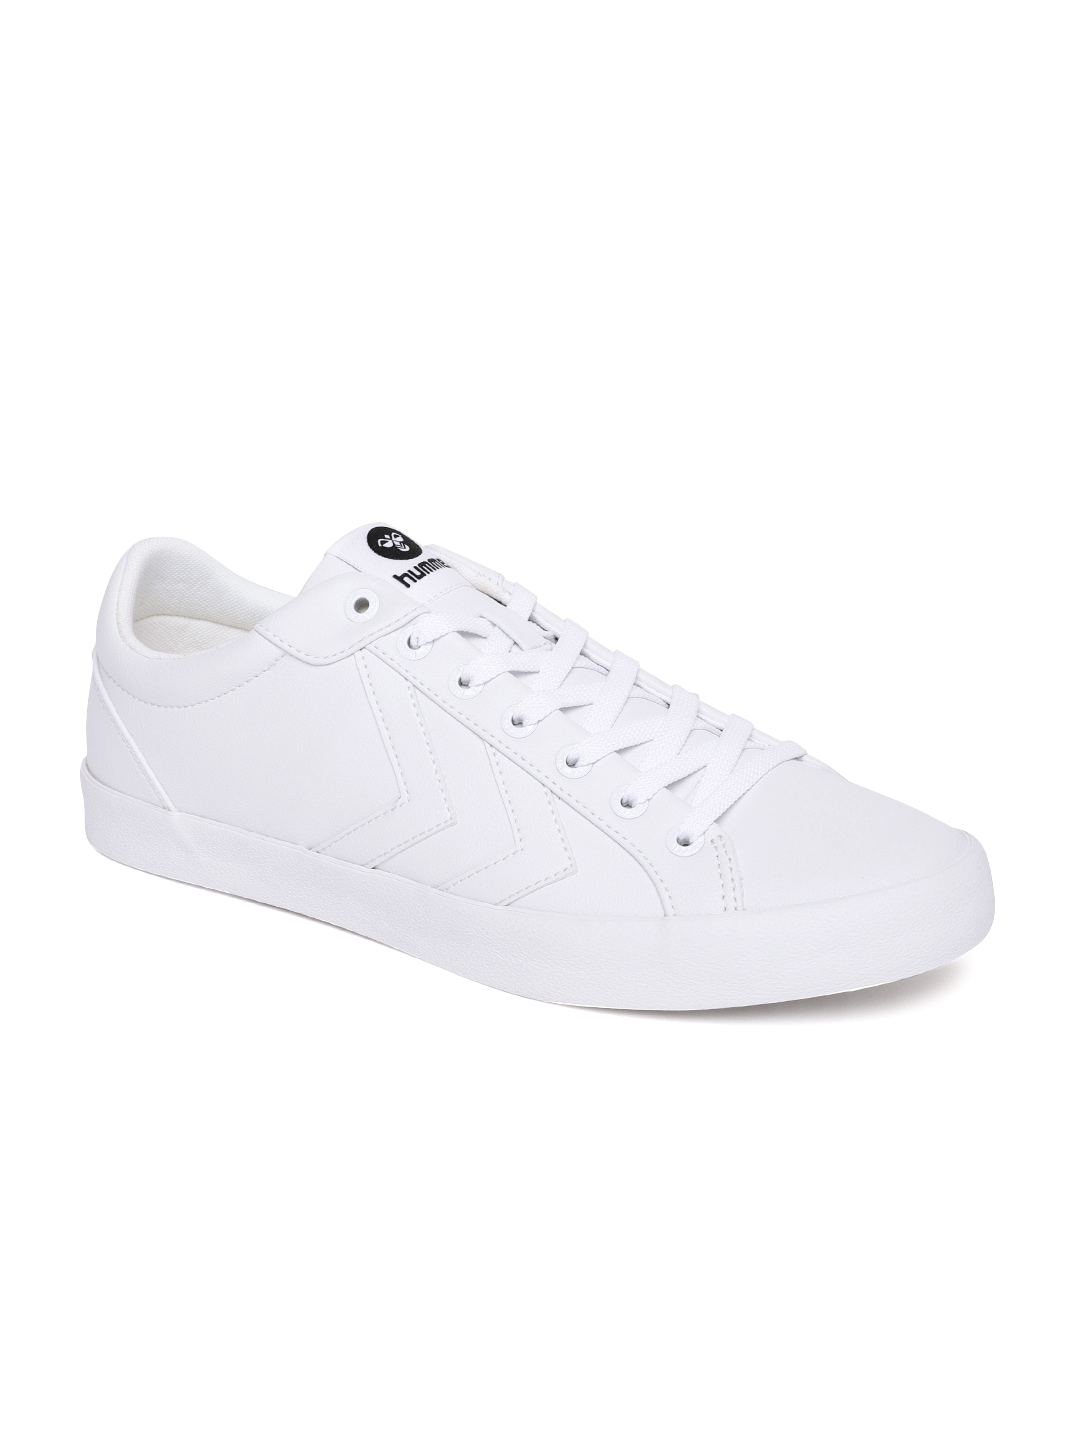 e2b41a71a7 Men Footwear - Buy Mens Footwear   Shoes Online in India - Myntra